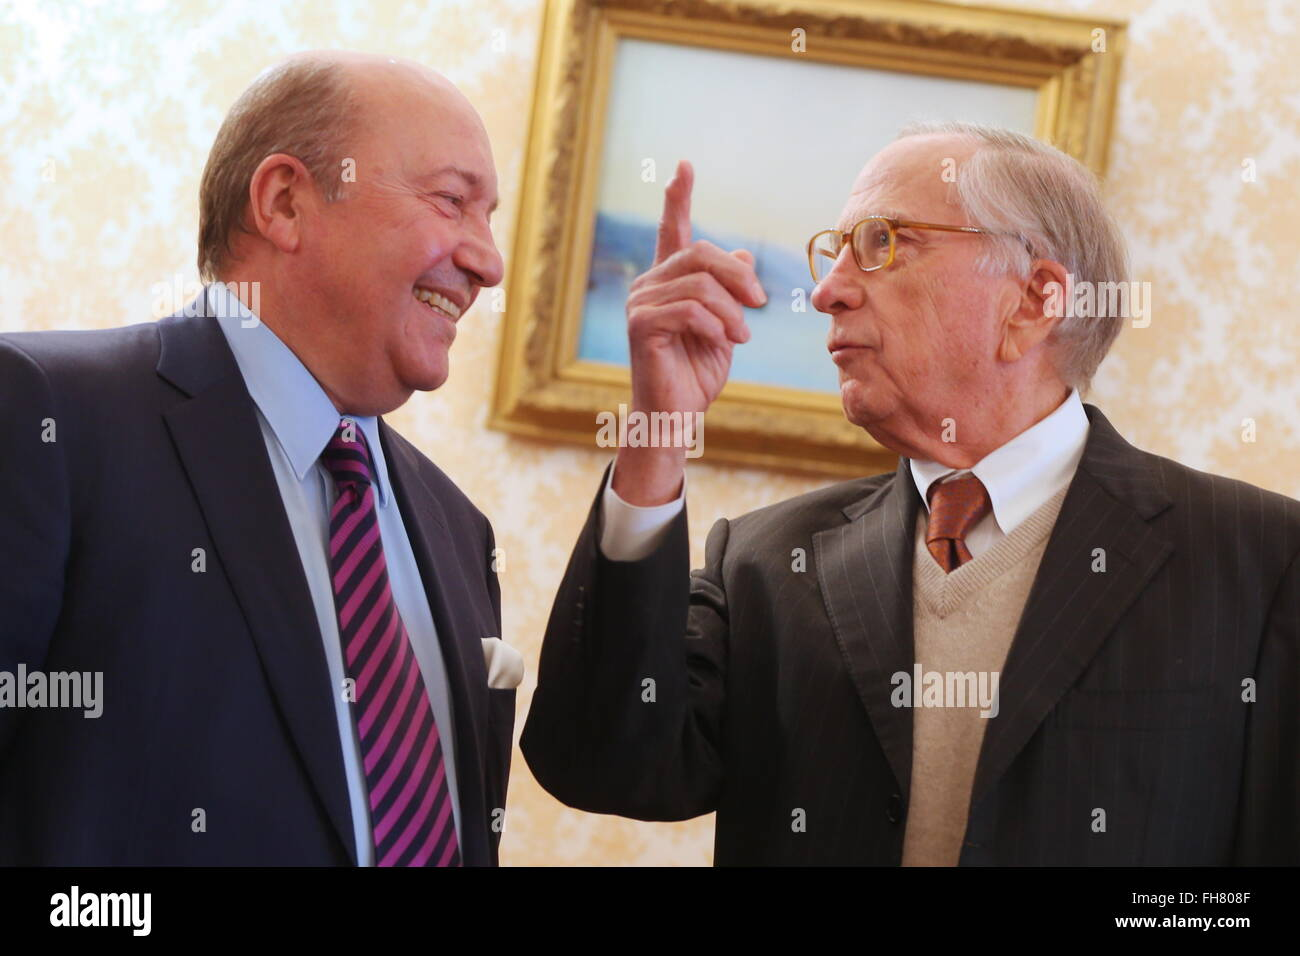 MOSCOW, RUSSIA. FEBRUARY 24, 2016. Russia's deputy minister of foreign affairs Grigory Karasin (L) and former - Stock Image